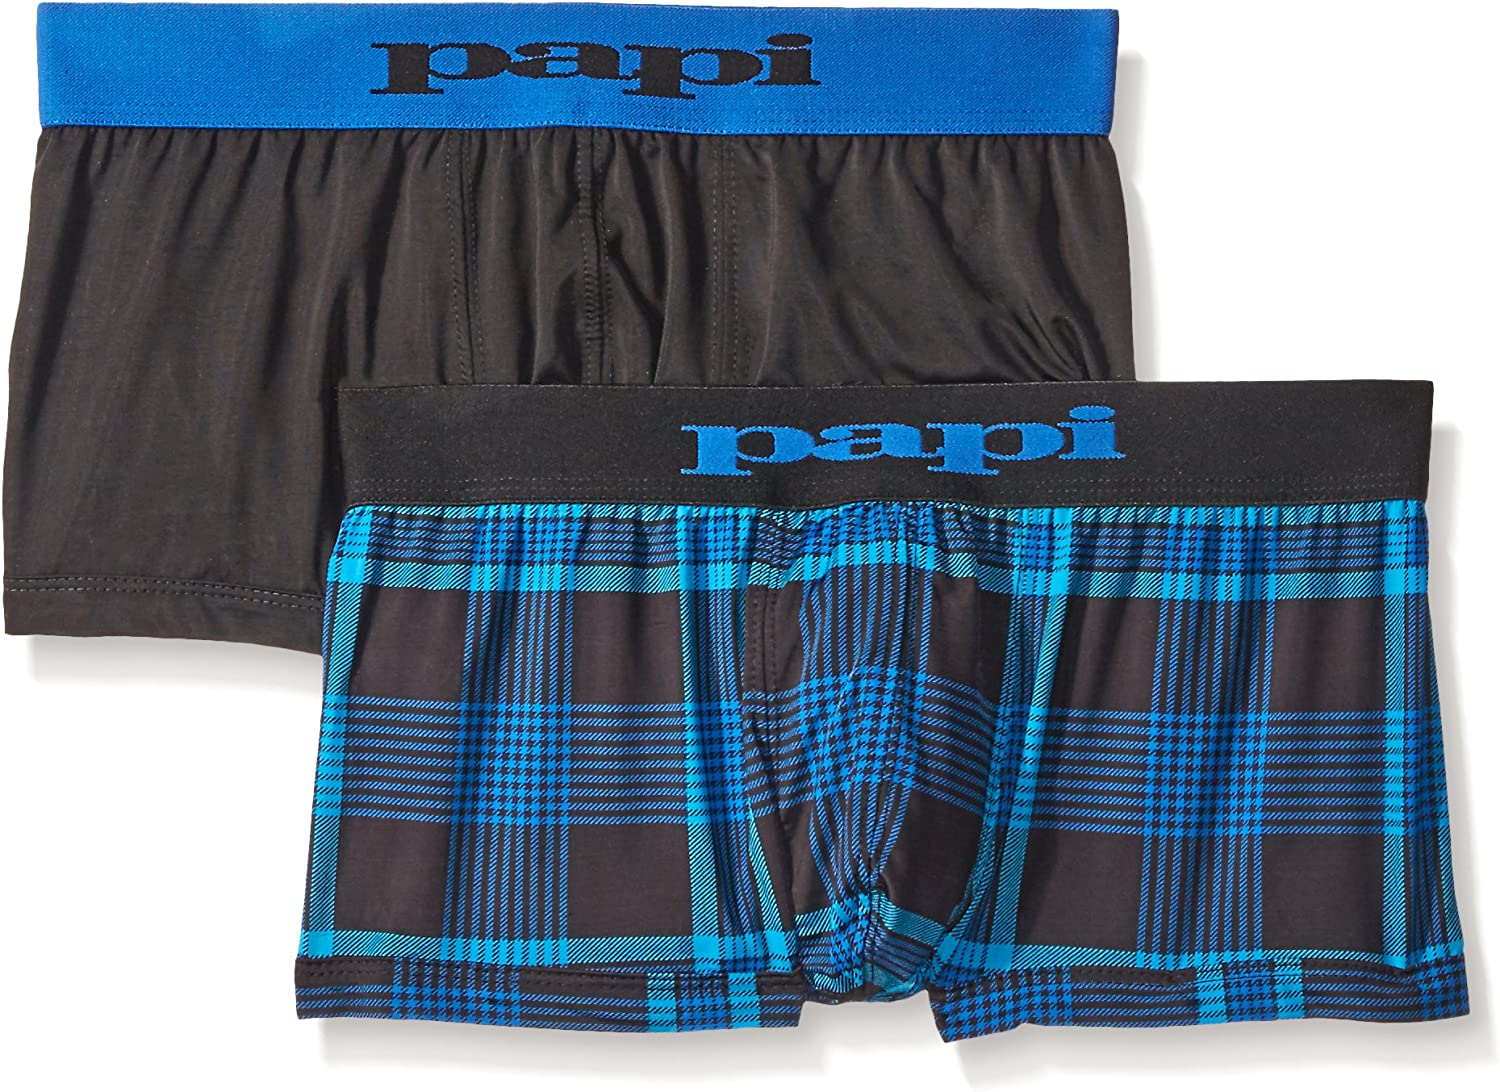 papi Men's Brazilian Cool Trunk Boxer Briefs Pack of 2 Comfort Fitting Underwear